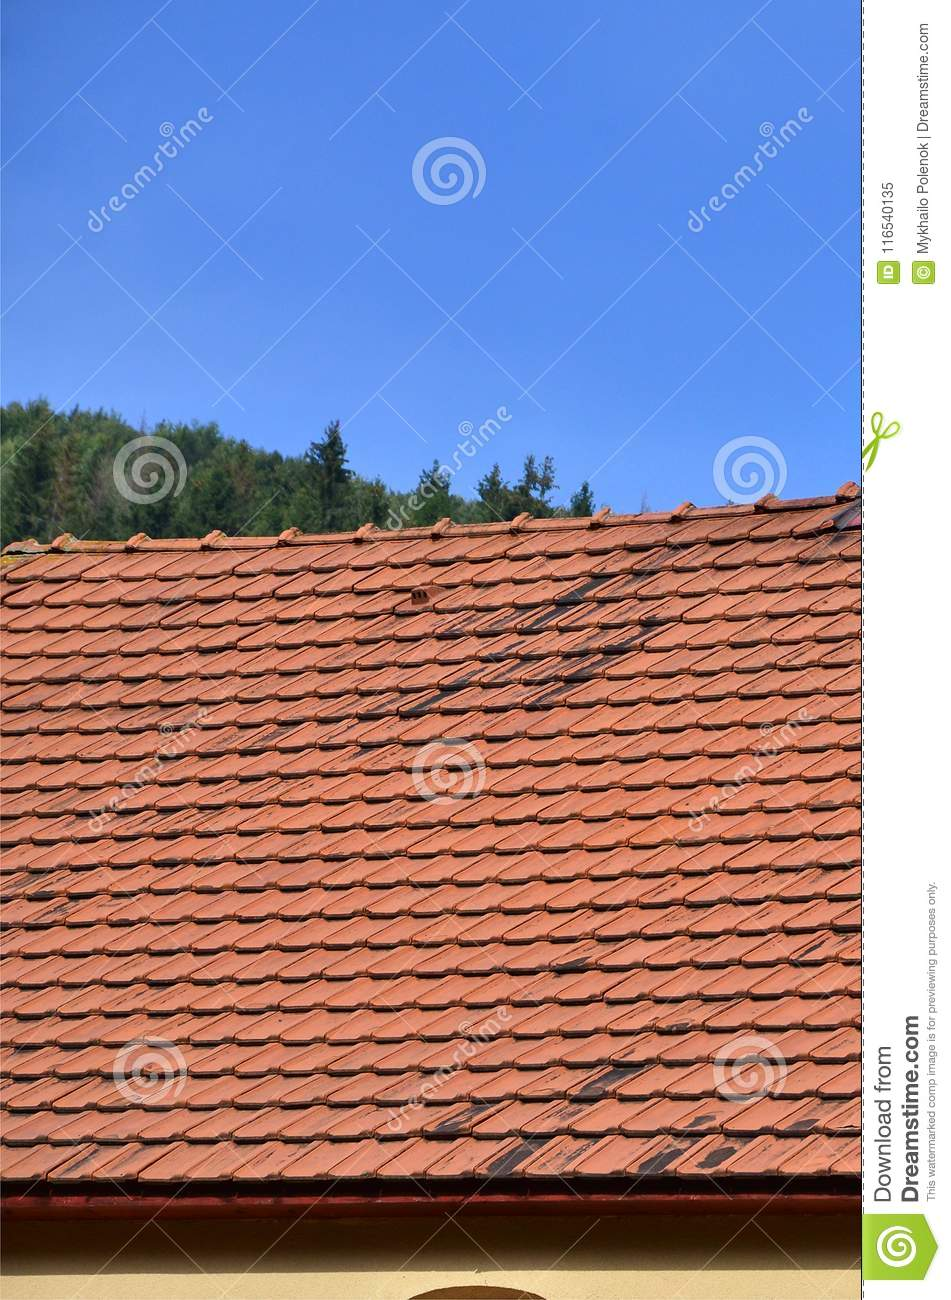 The Roof Of This Square Ceramic Tile Is Red The Old Type Of Roof